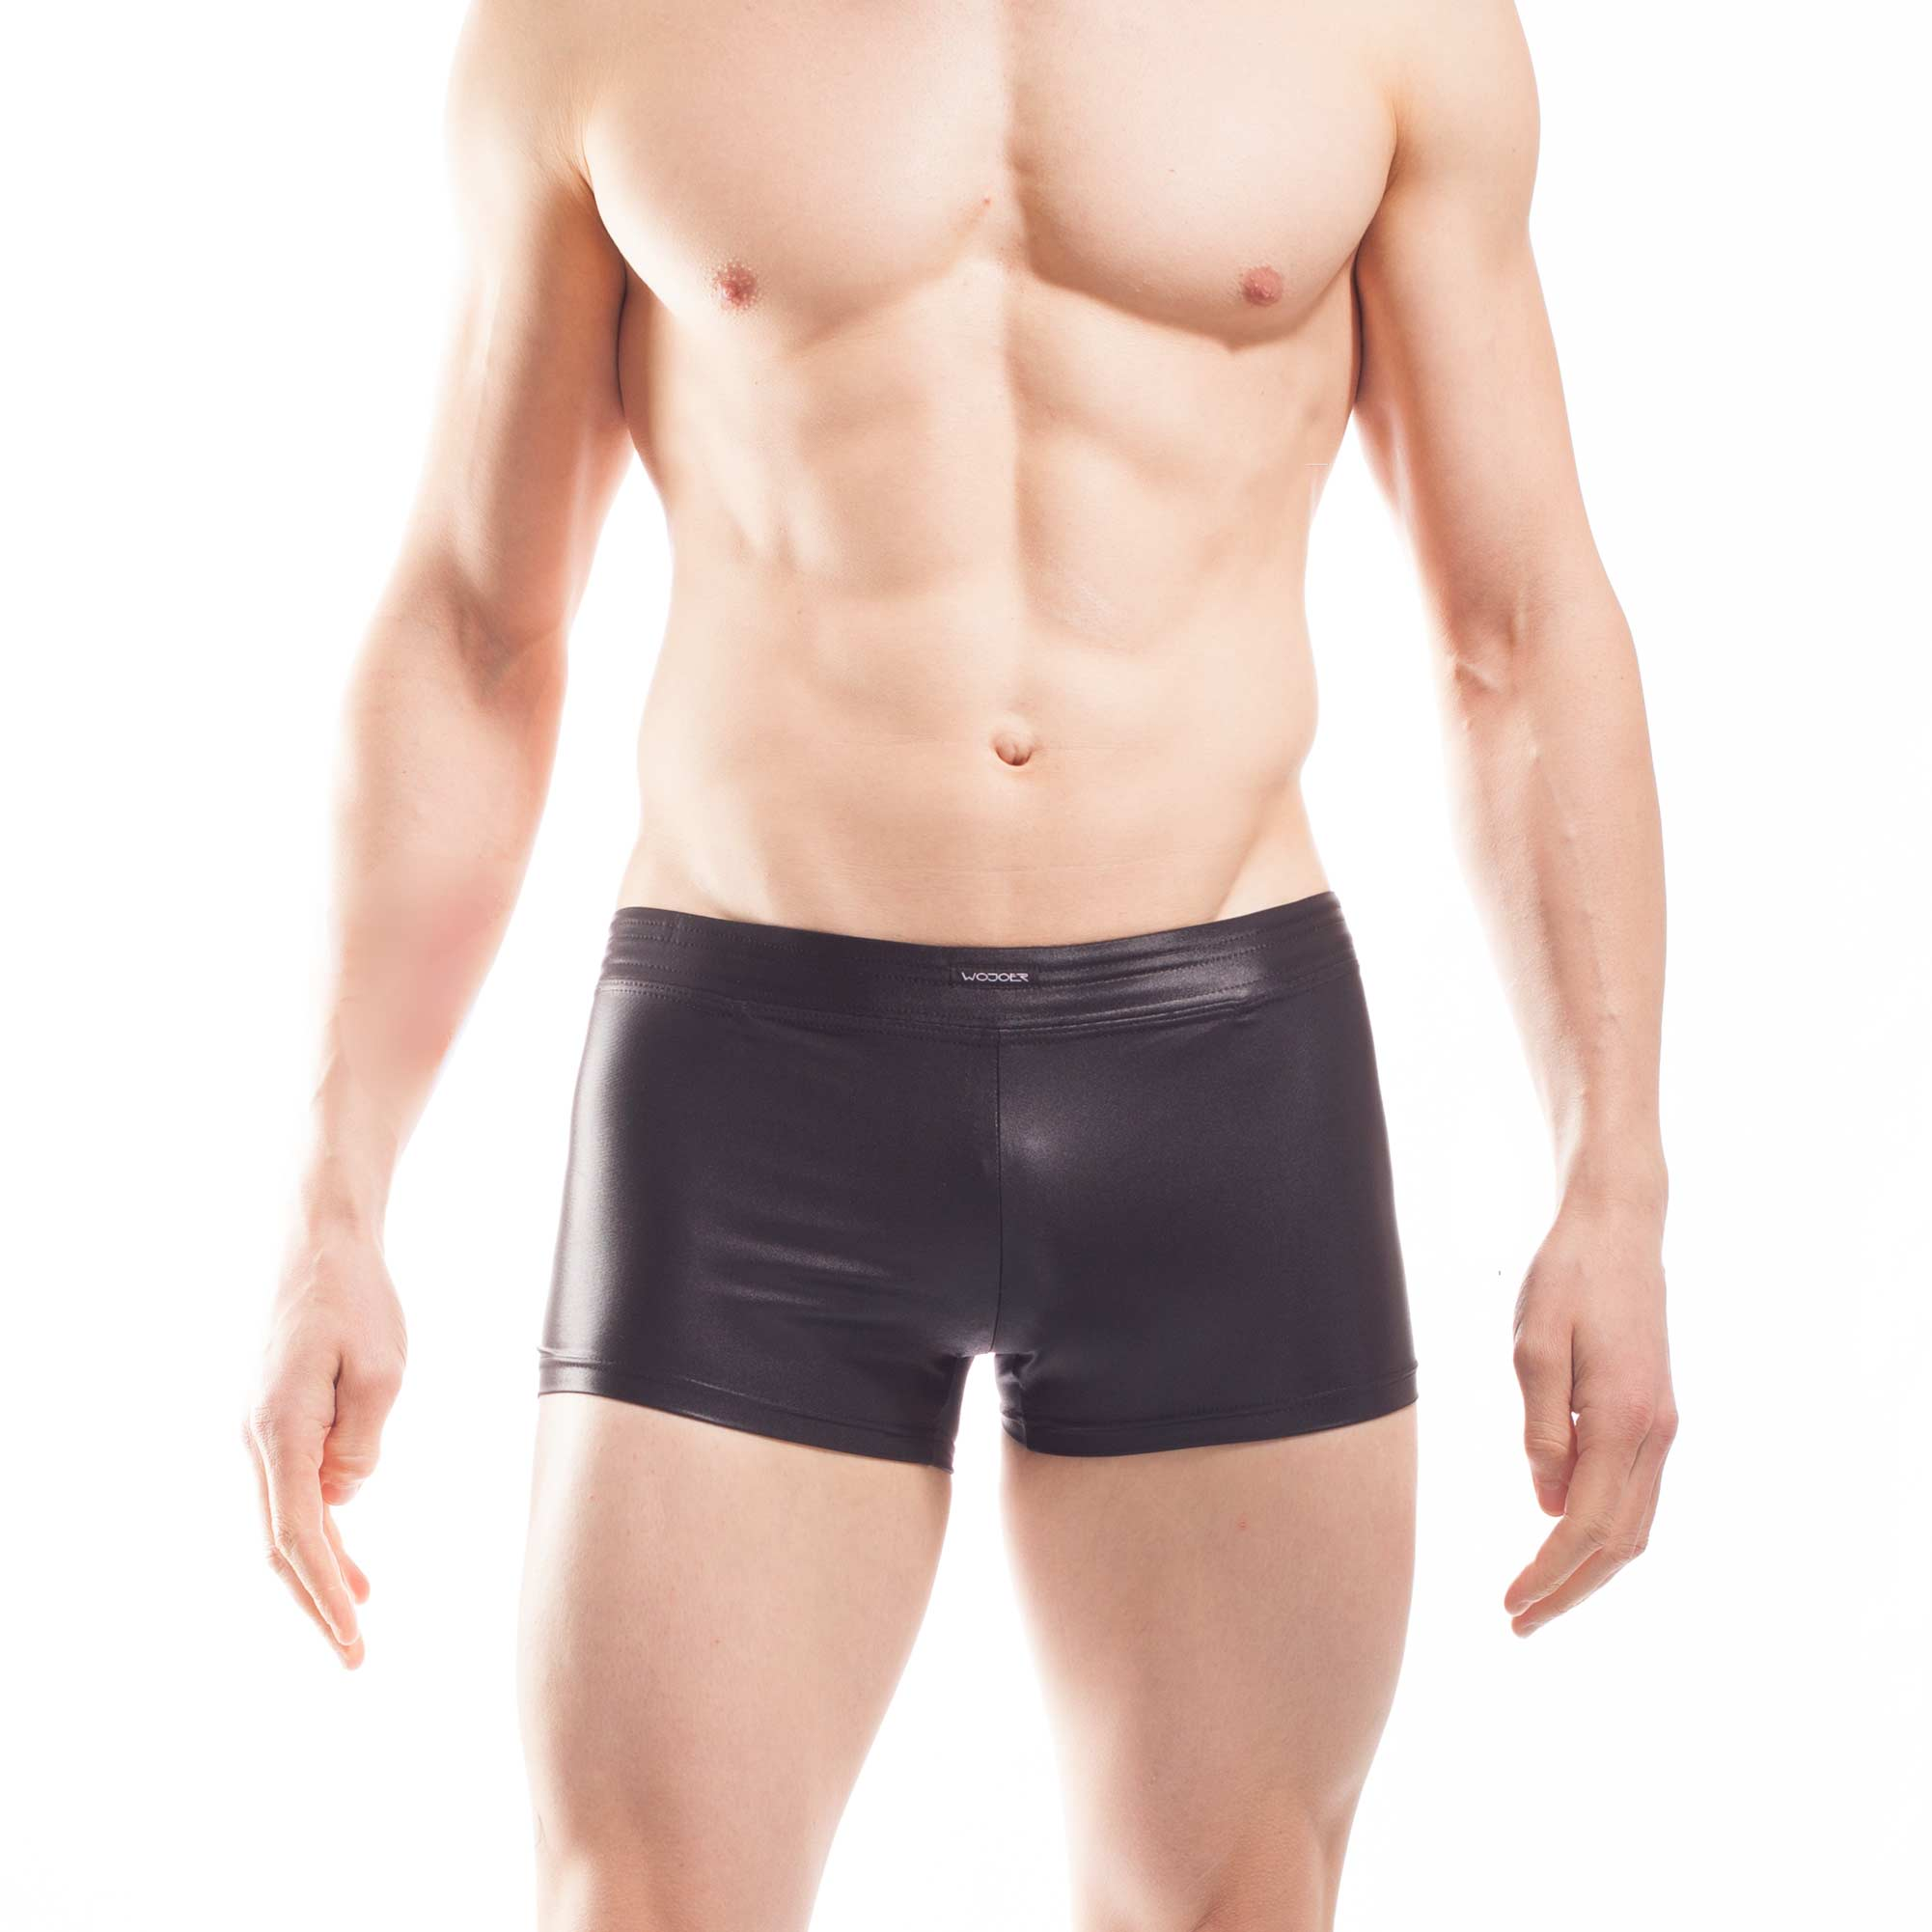 Beach wet Badeshorts, Wetbeach Bade Pants, Glanz, Silky touch, Badehose, Bade shorts, Bade pants, schwarz, matt schimmernd